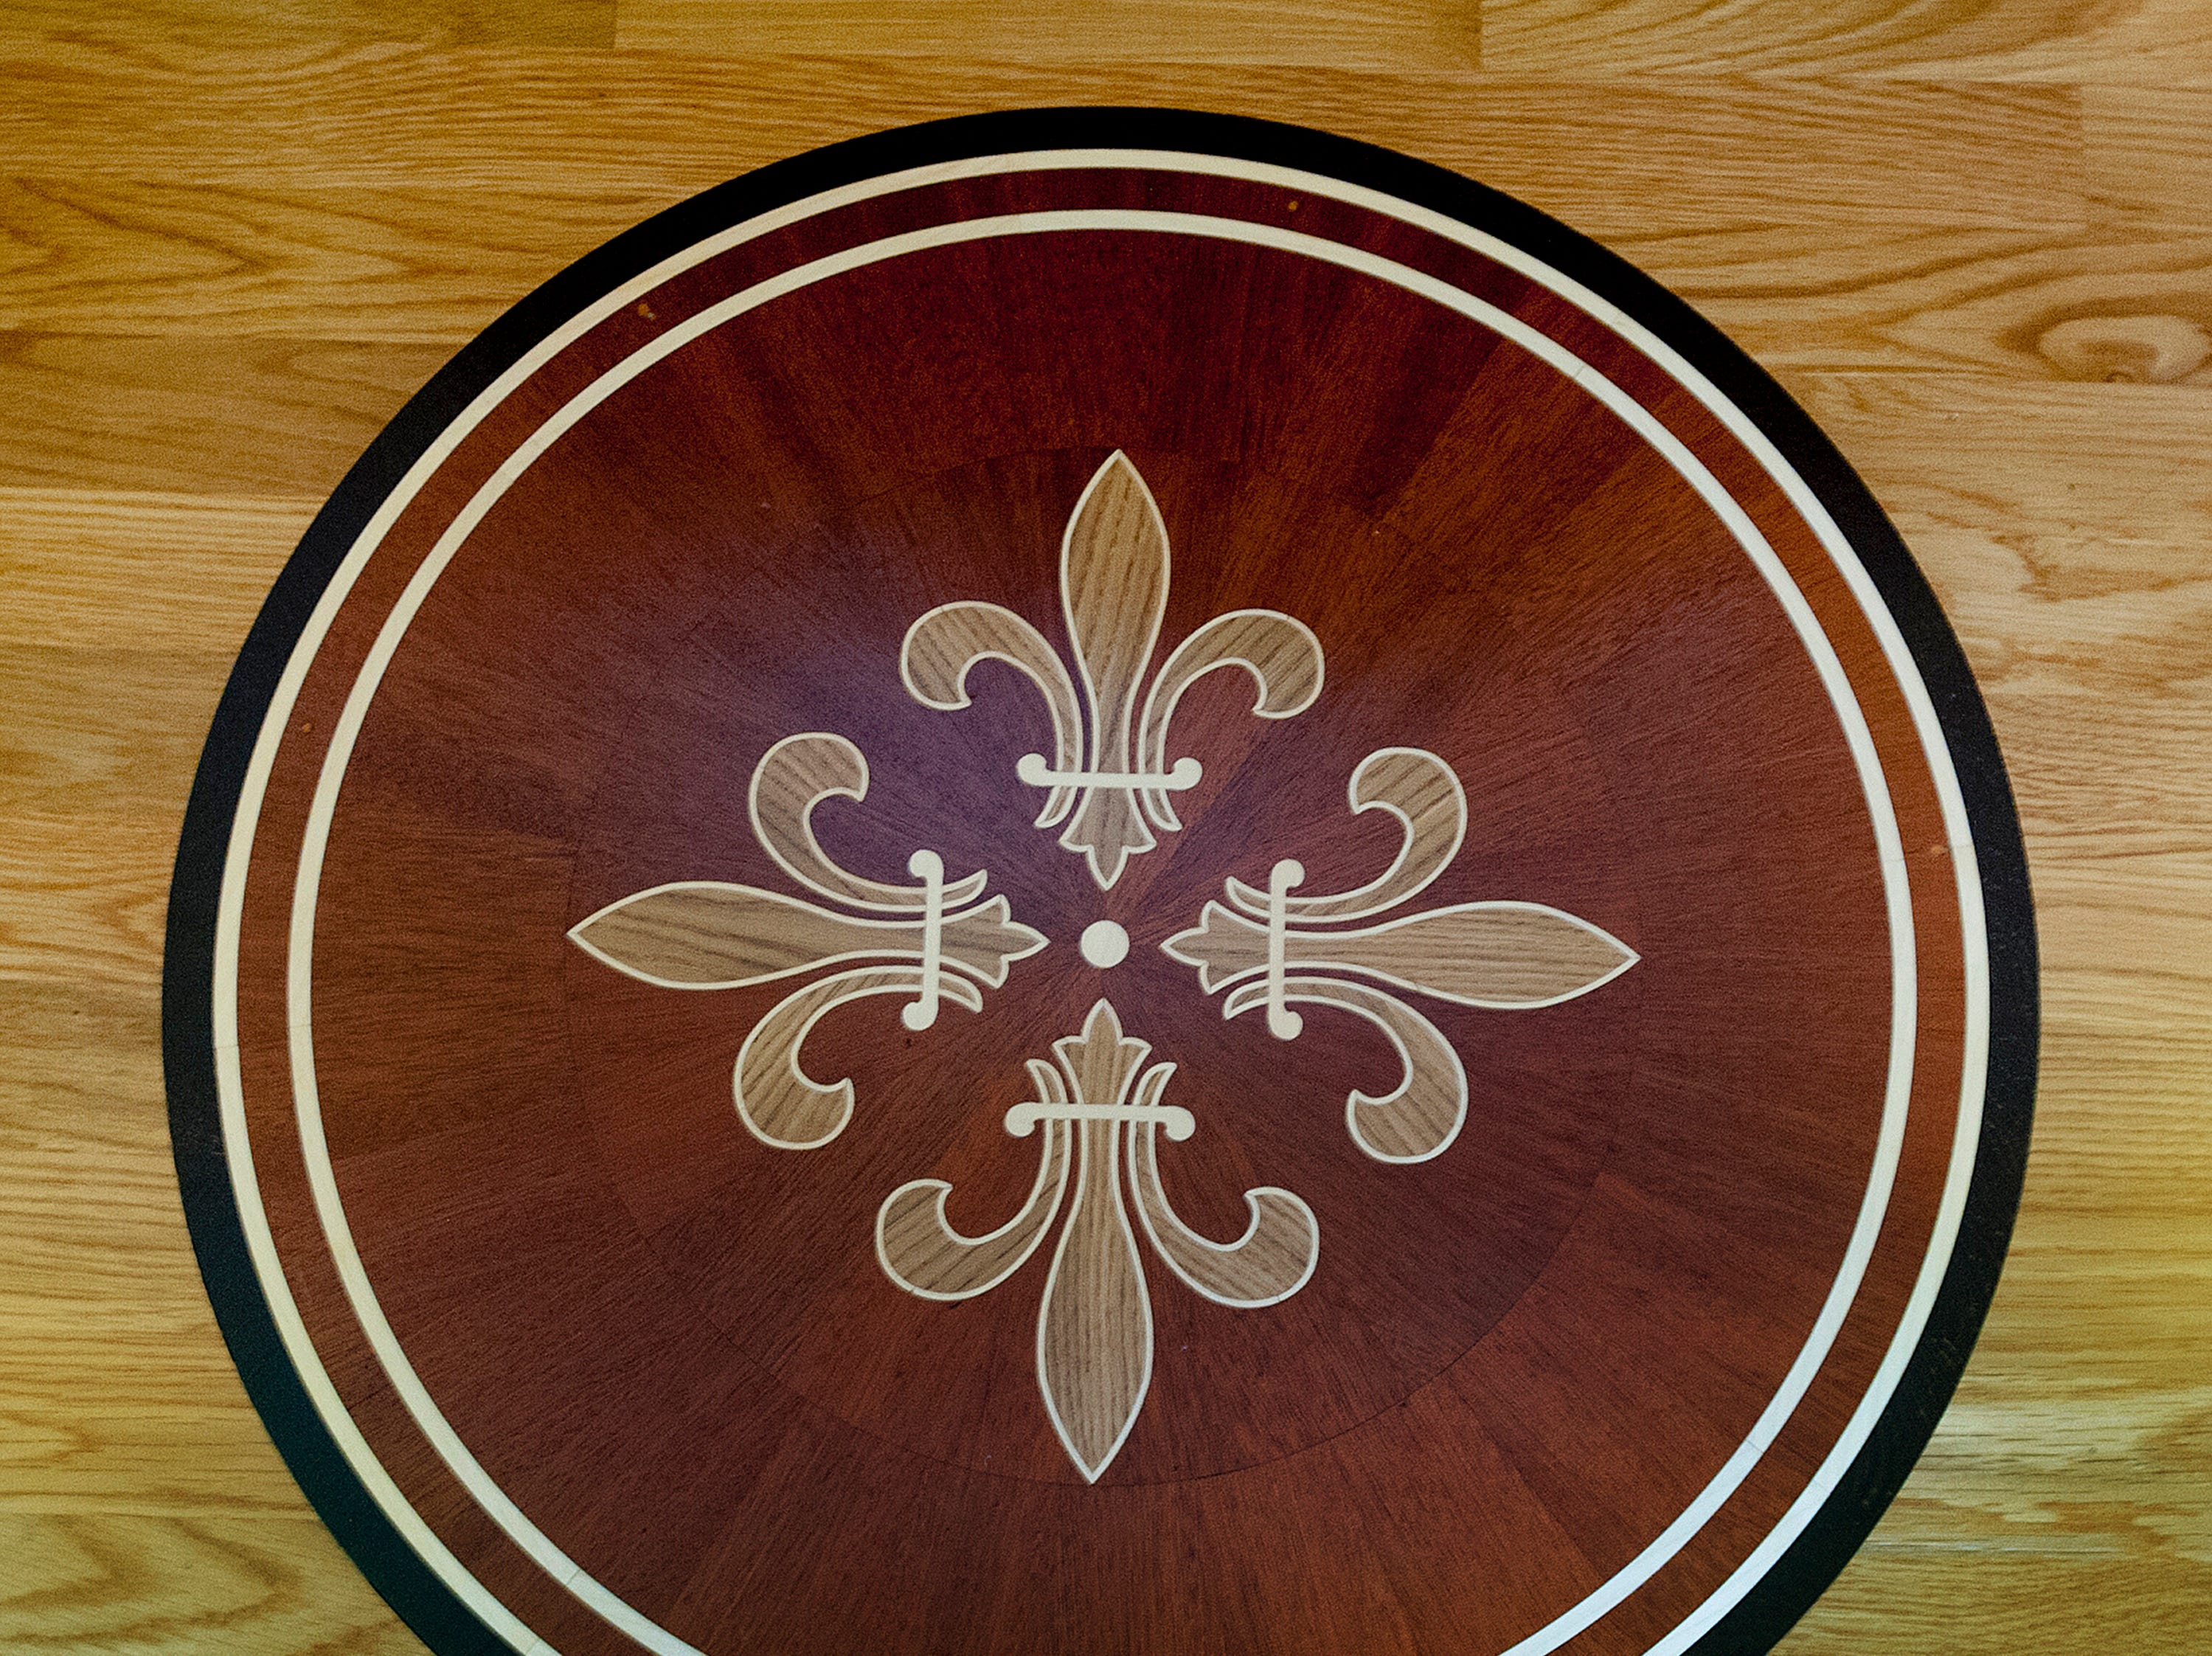 A Fleur de Lis inlay adorns the landing between the first and second floors of the Clifford's Portland home.